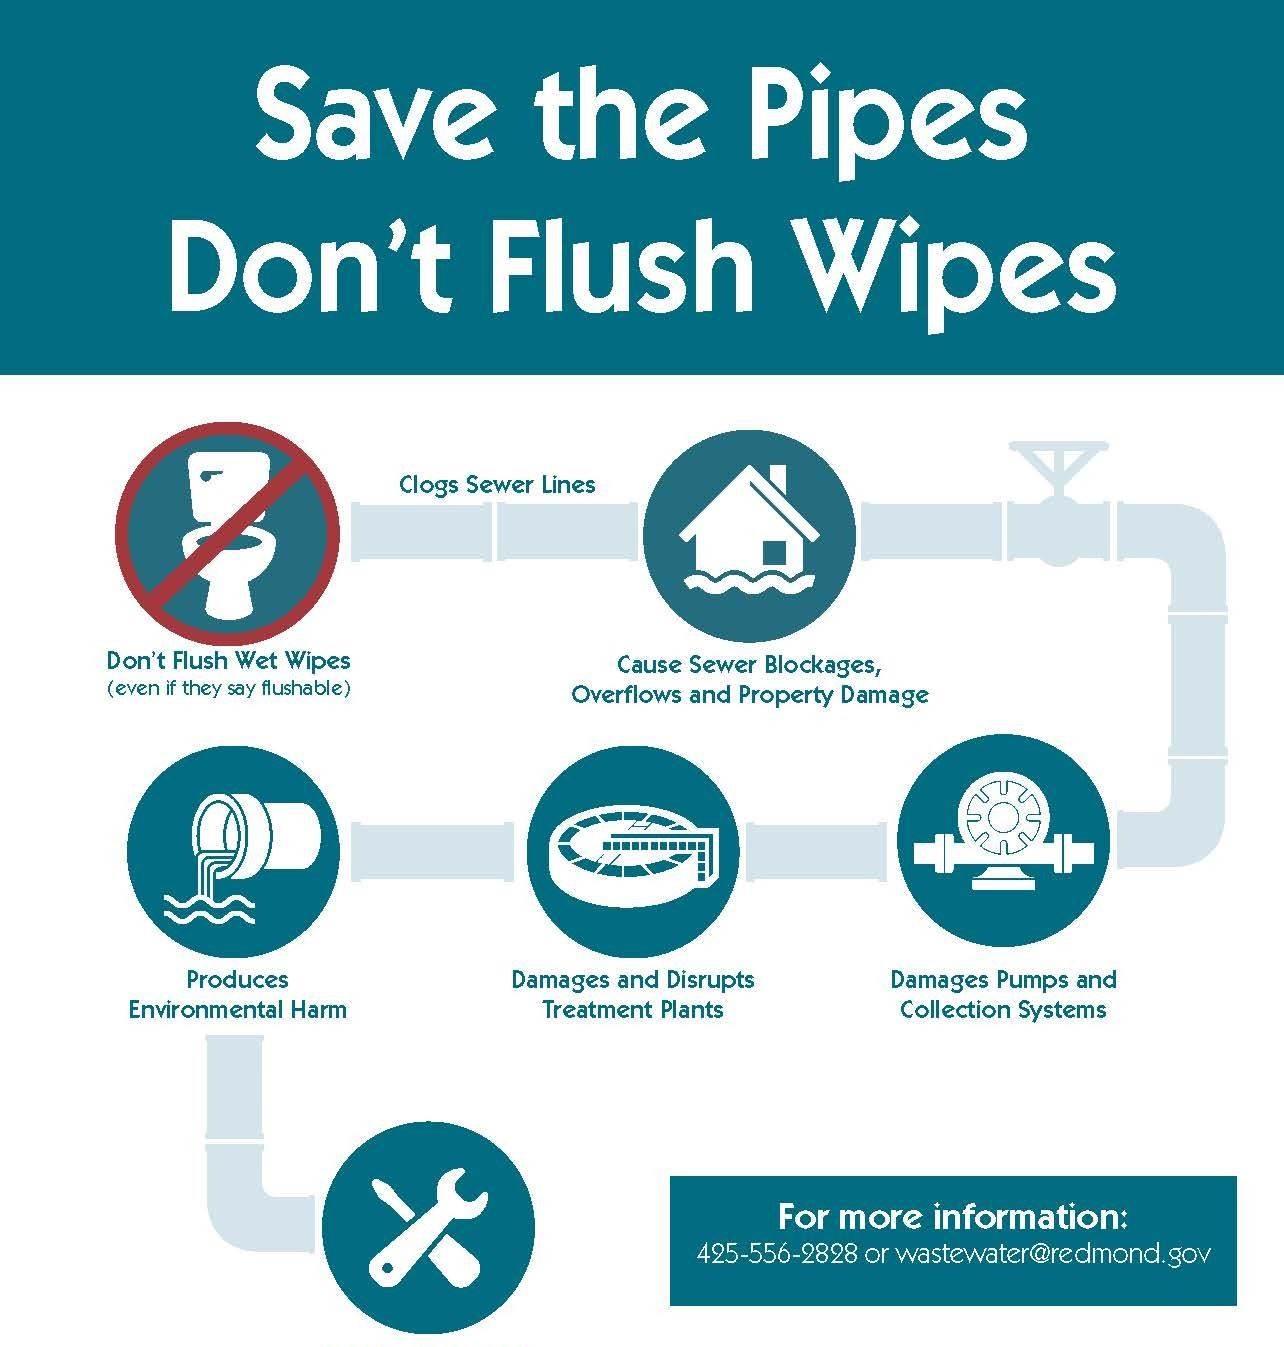 Save the Pipes, Don't Flush Wipes